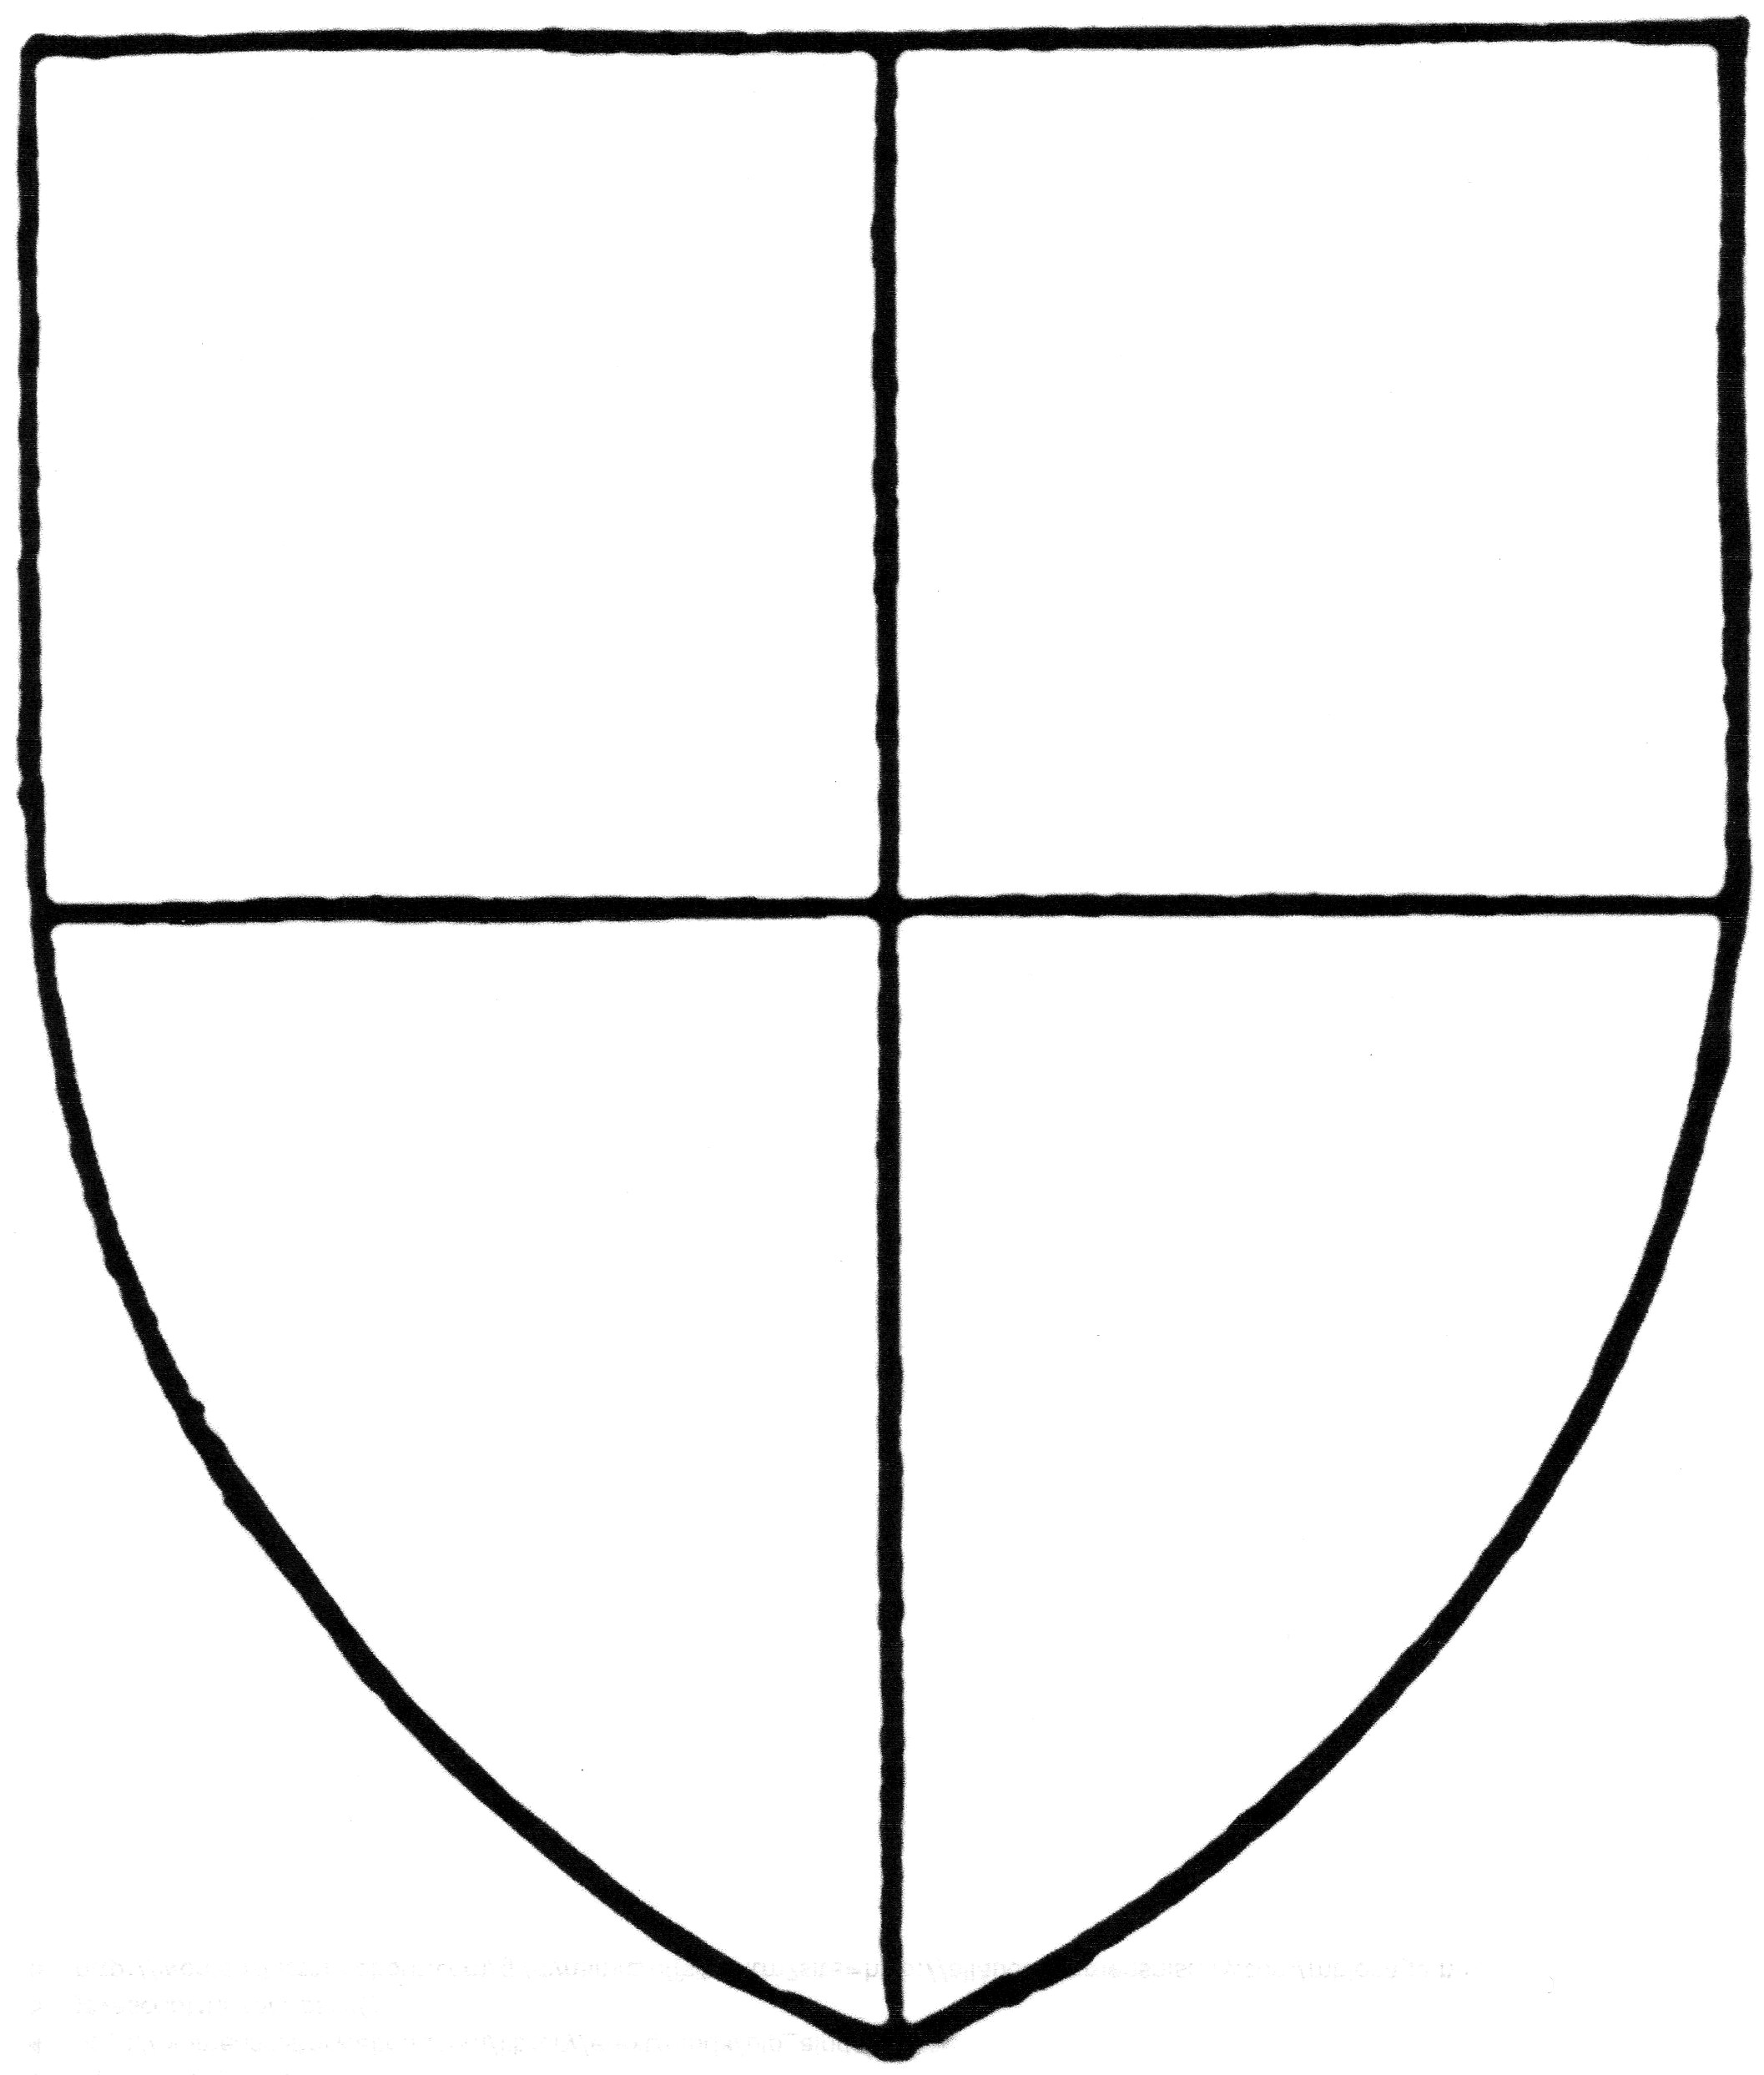 Coat Of Arms Template With Symbols